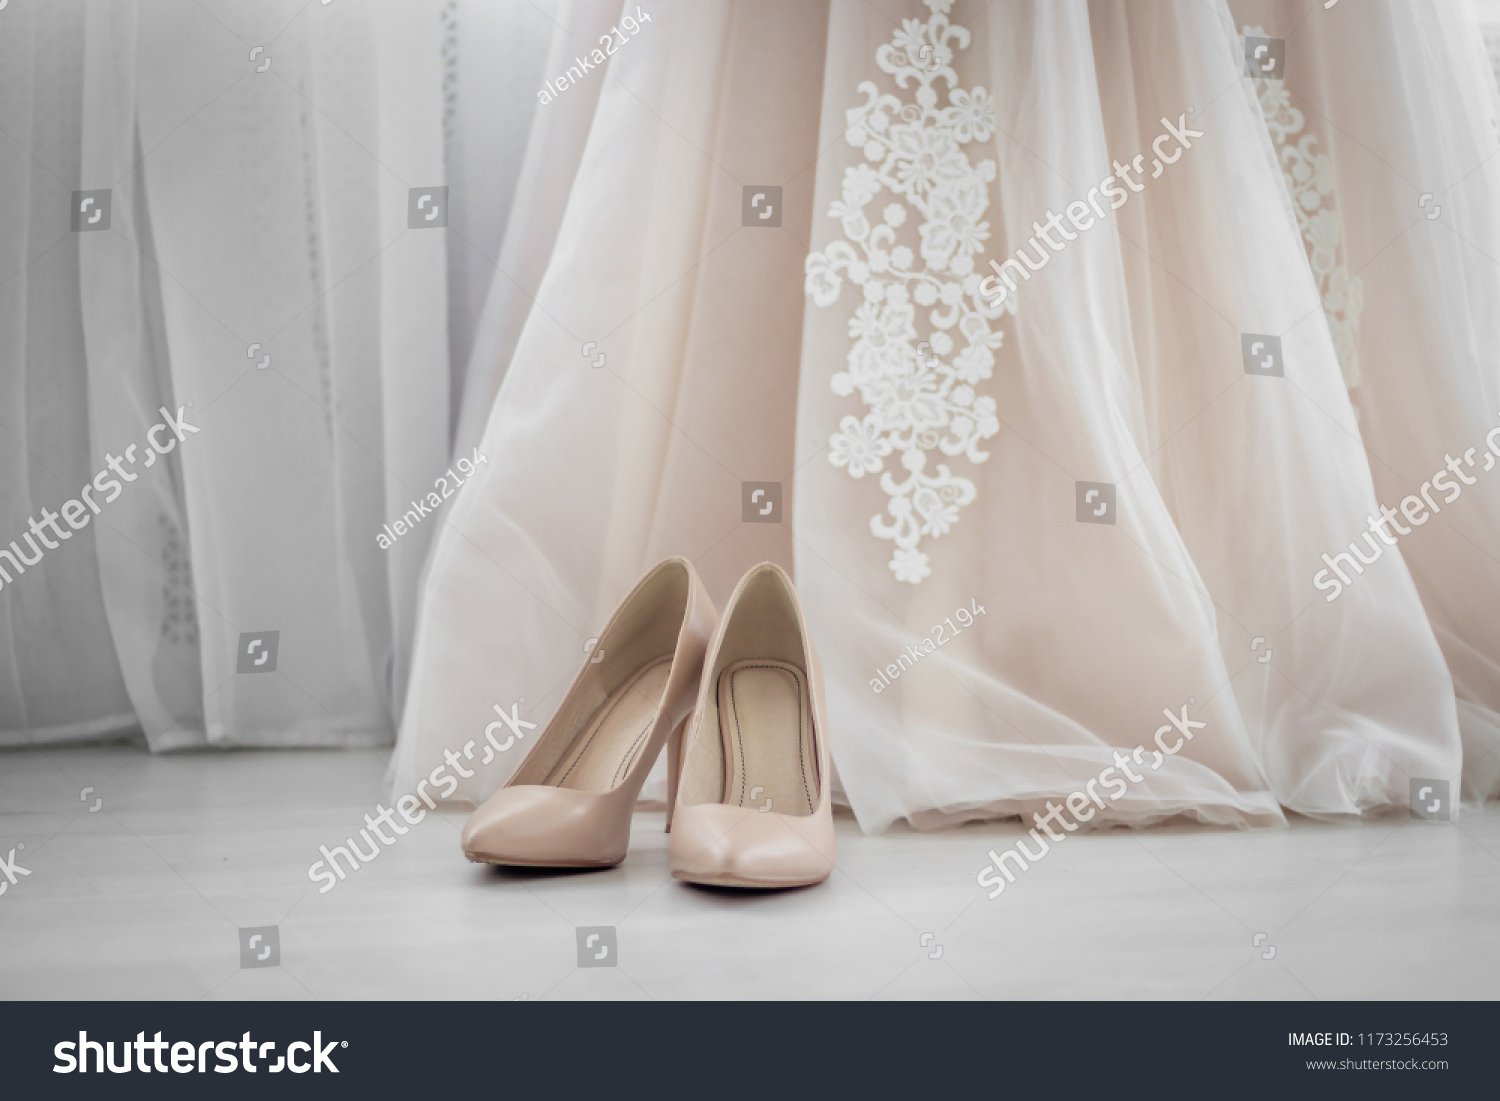 9ce851a2c3d140 Beige shoes. Wedding Shoes. Bride shoes on heel. The bride s fees. Wedding  decorations - Image